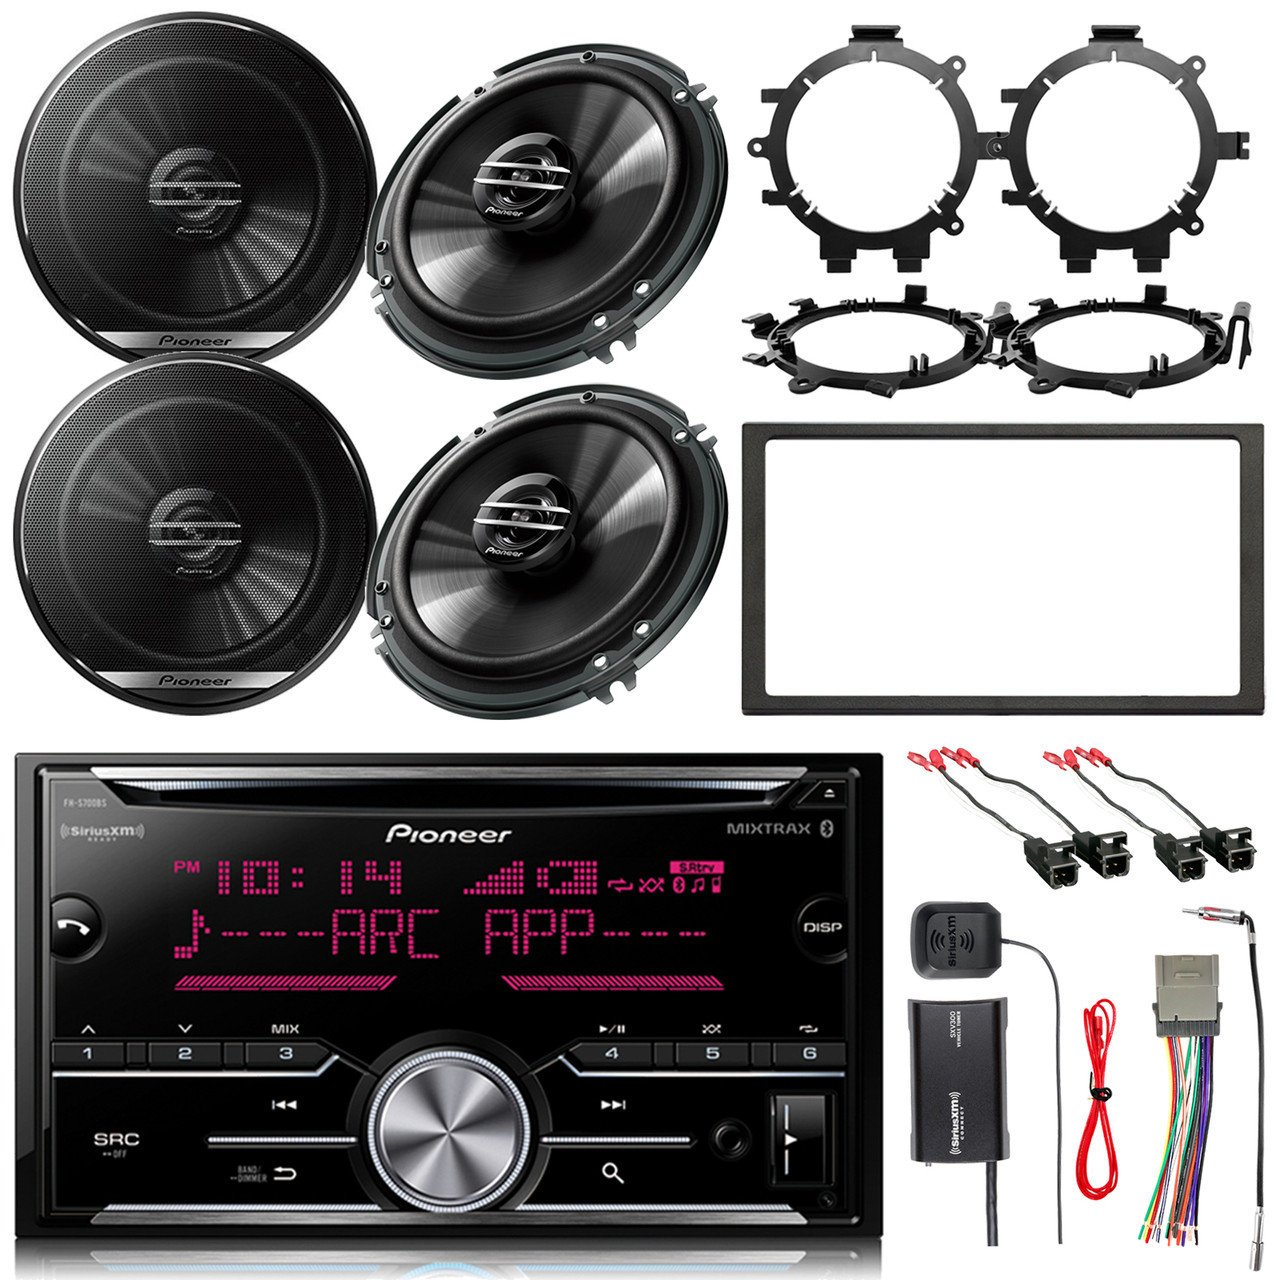 medium resolution of pioneer 2din cd bluetooth receiver 4x 6 5 speakers dash kit stereo wiring harness antenna adapter siriusxm radio tuner 4x speaker wire harness